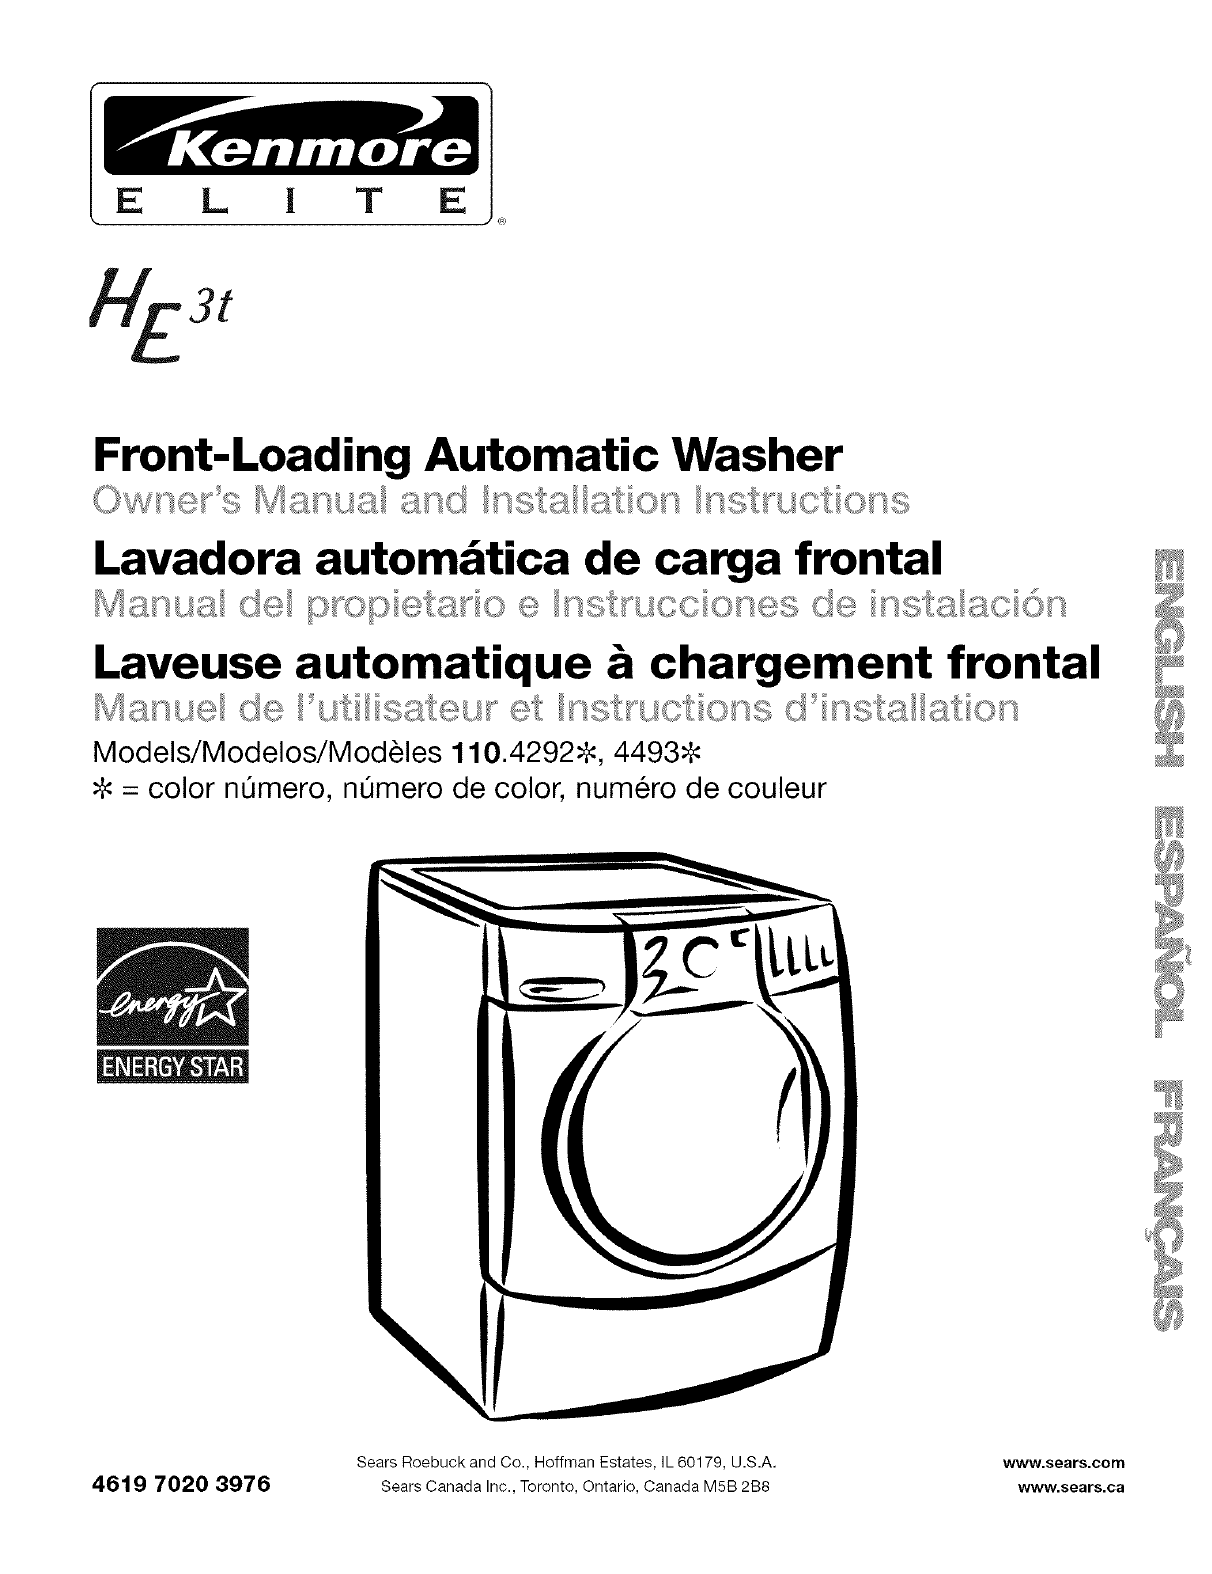 Kenmore Elite 11042926200 User Manual WASHER Manuals And Guides L0606171